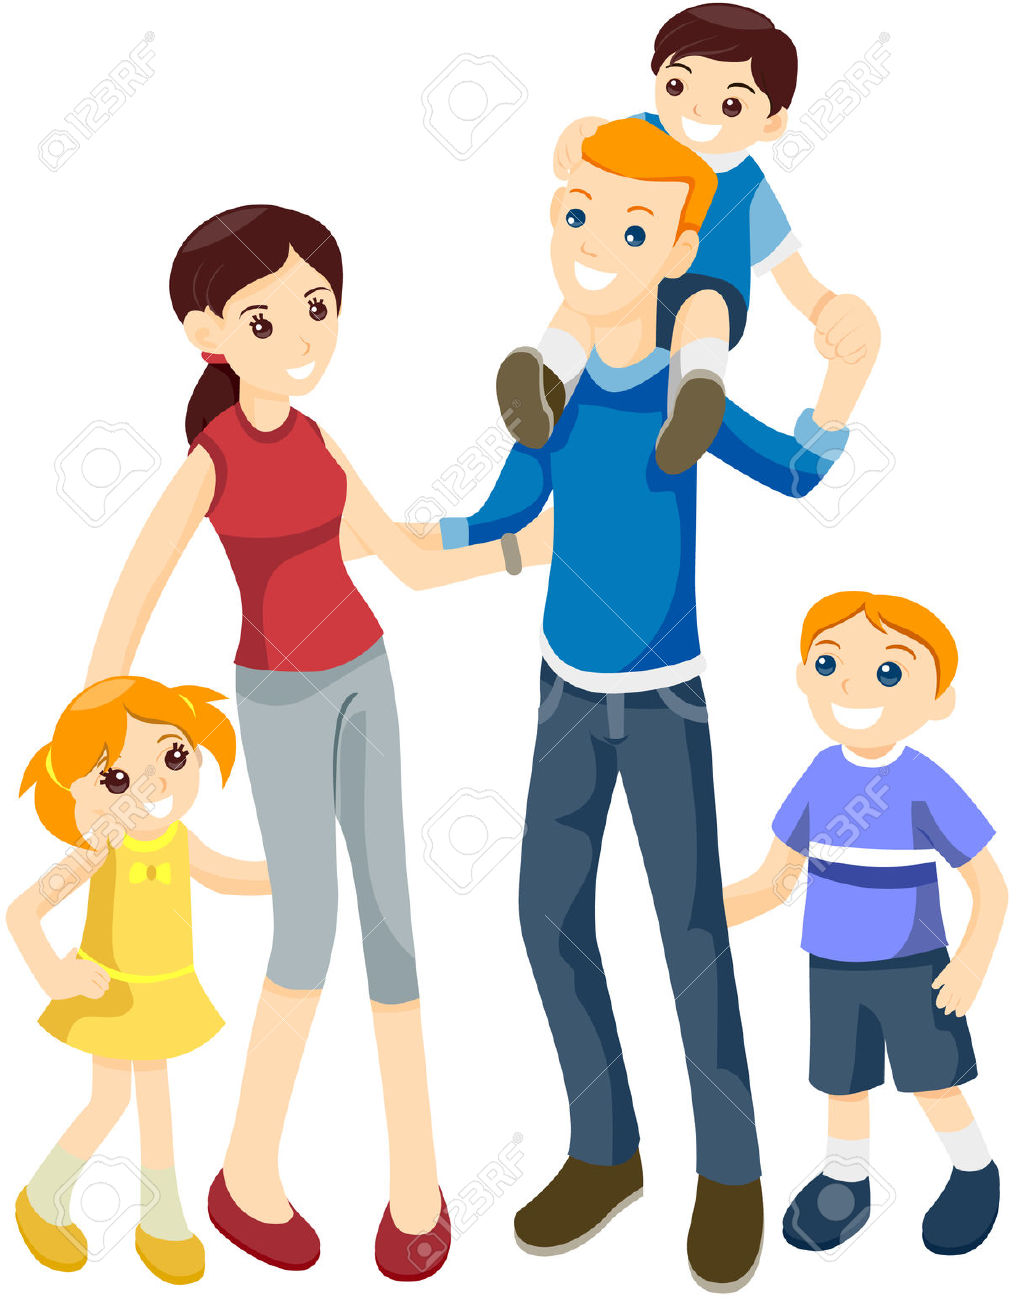 Happy Family Clipart   Free download on ClipArtMag (1022 x 1300 Pixel)